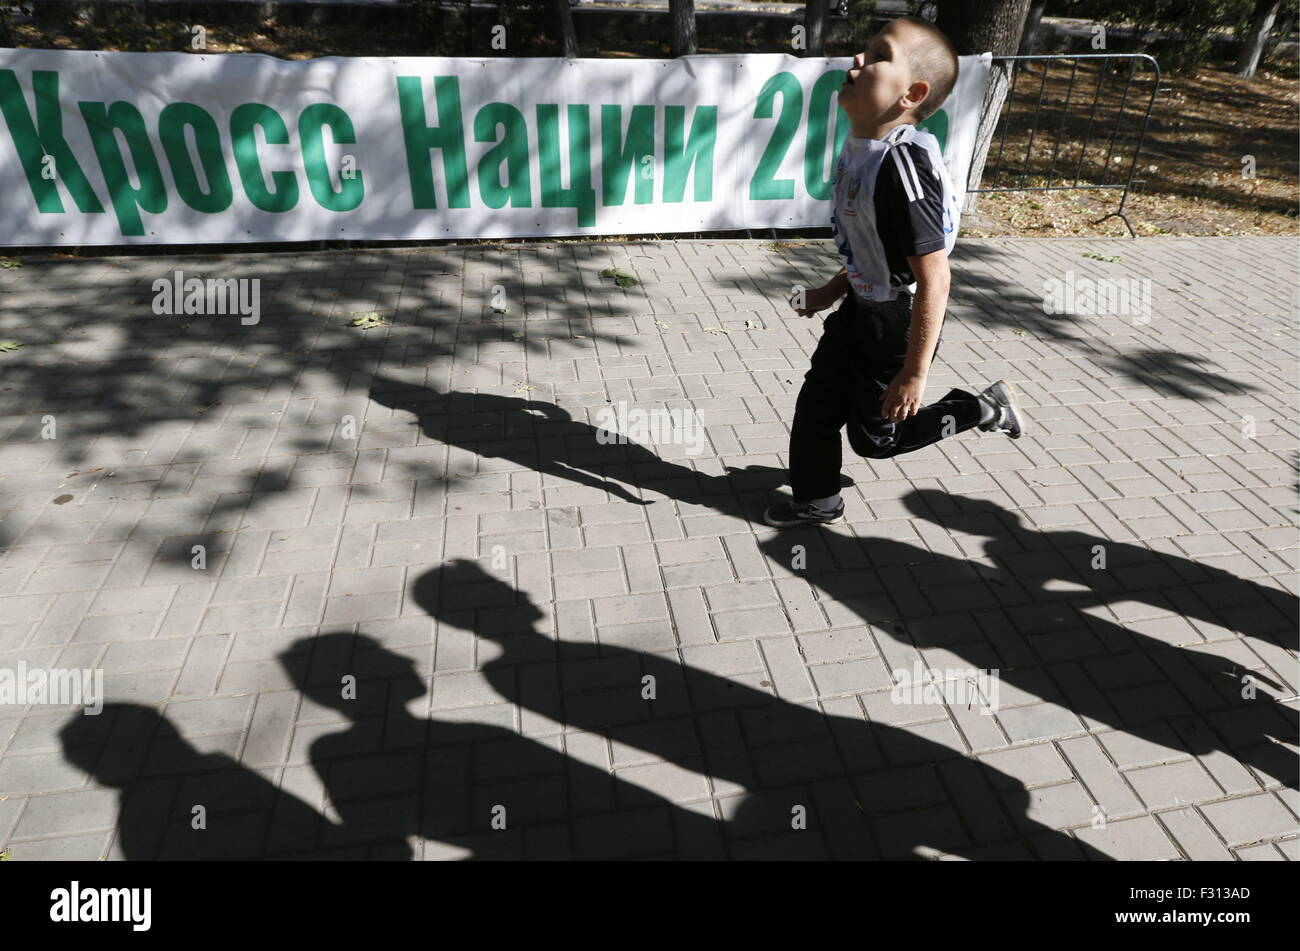 ROSTOV-ON-DON, RUSSIA. SEPTEMBER 27, 2015. A participant in the 2015 Cross of the Nation event. Valery Matytsin/TASS - Stock Image